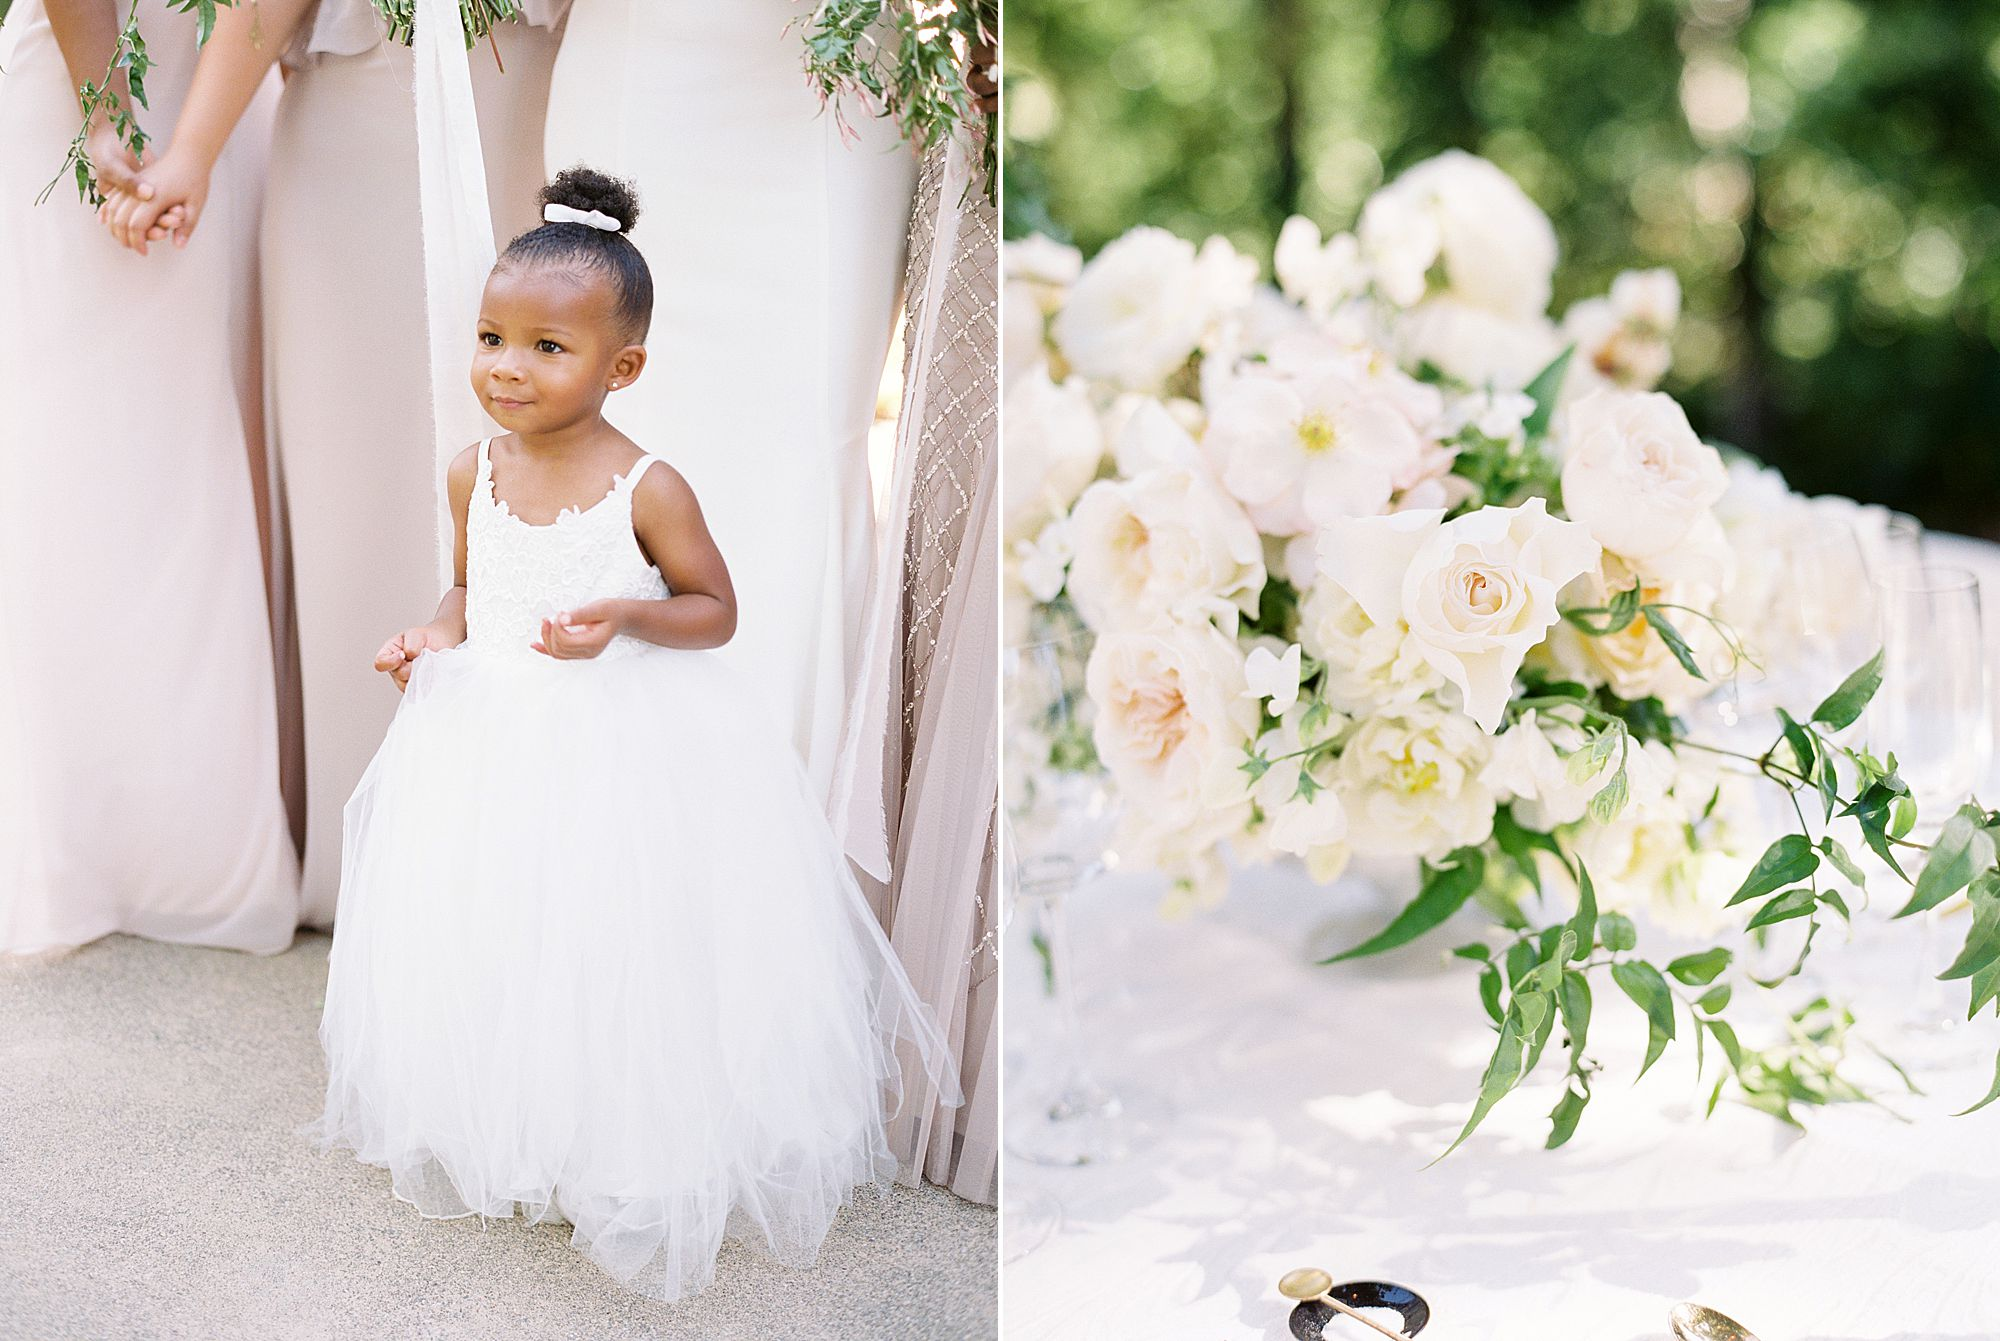 Park Winters Micro-Wedding Inspiration on Style Me Pretty - Stephanie Teague Events - Ashley Baumgartner - Park Winters Wedding - Black Tie Wedding - Micro-Wedding Sacramento Photographer_0069.jpg